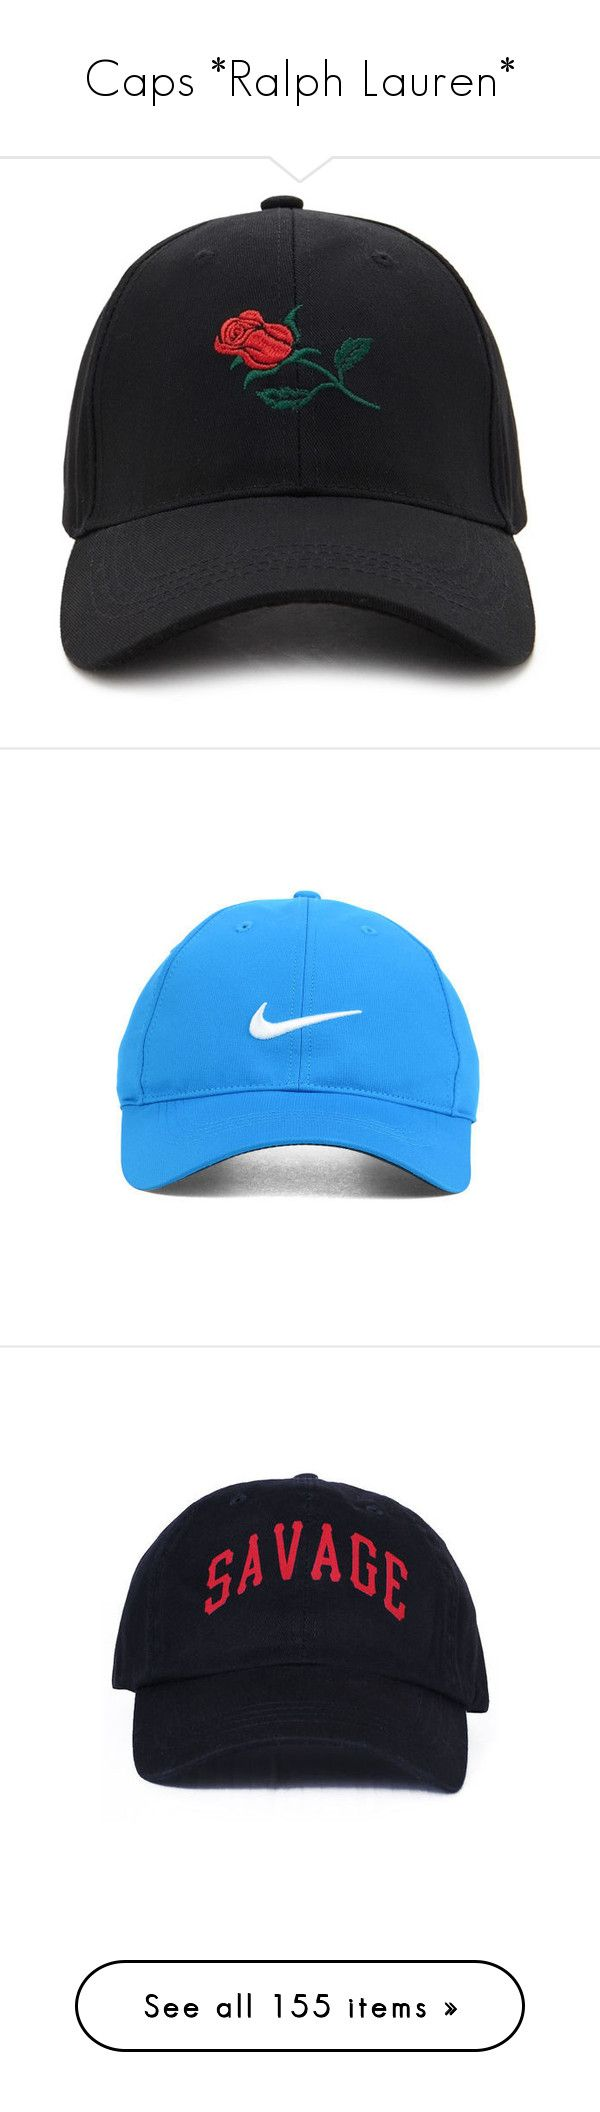 """""""Caps *Ralph Lauren*"""" by younglolita ❤ liked on Polyvore featuring accessories, hats, snapback cap, embroidered baseball hats, adjustable hats, cotton hat, baseball cap hats, nike, nike golf cap and nike golf hats"""